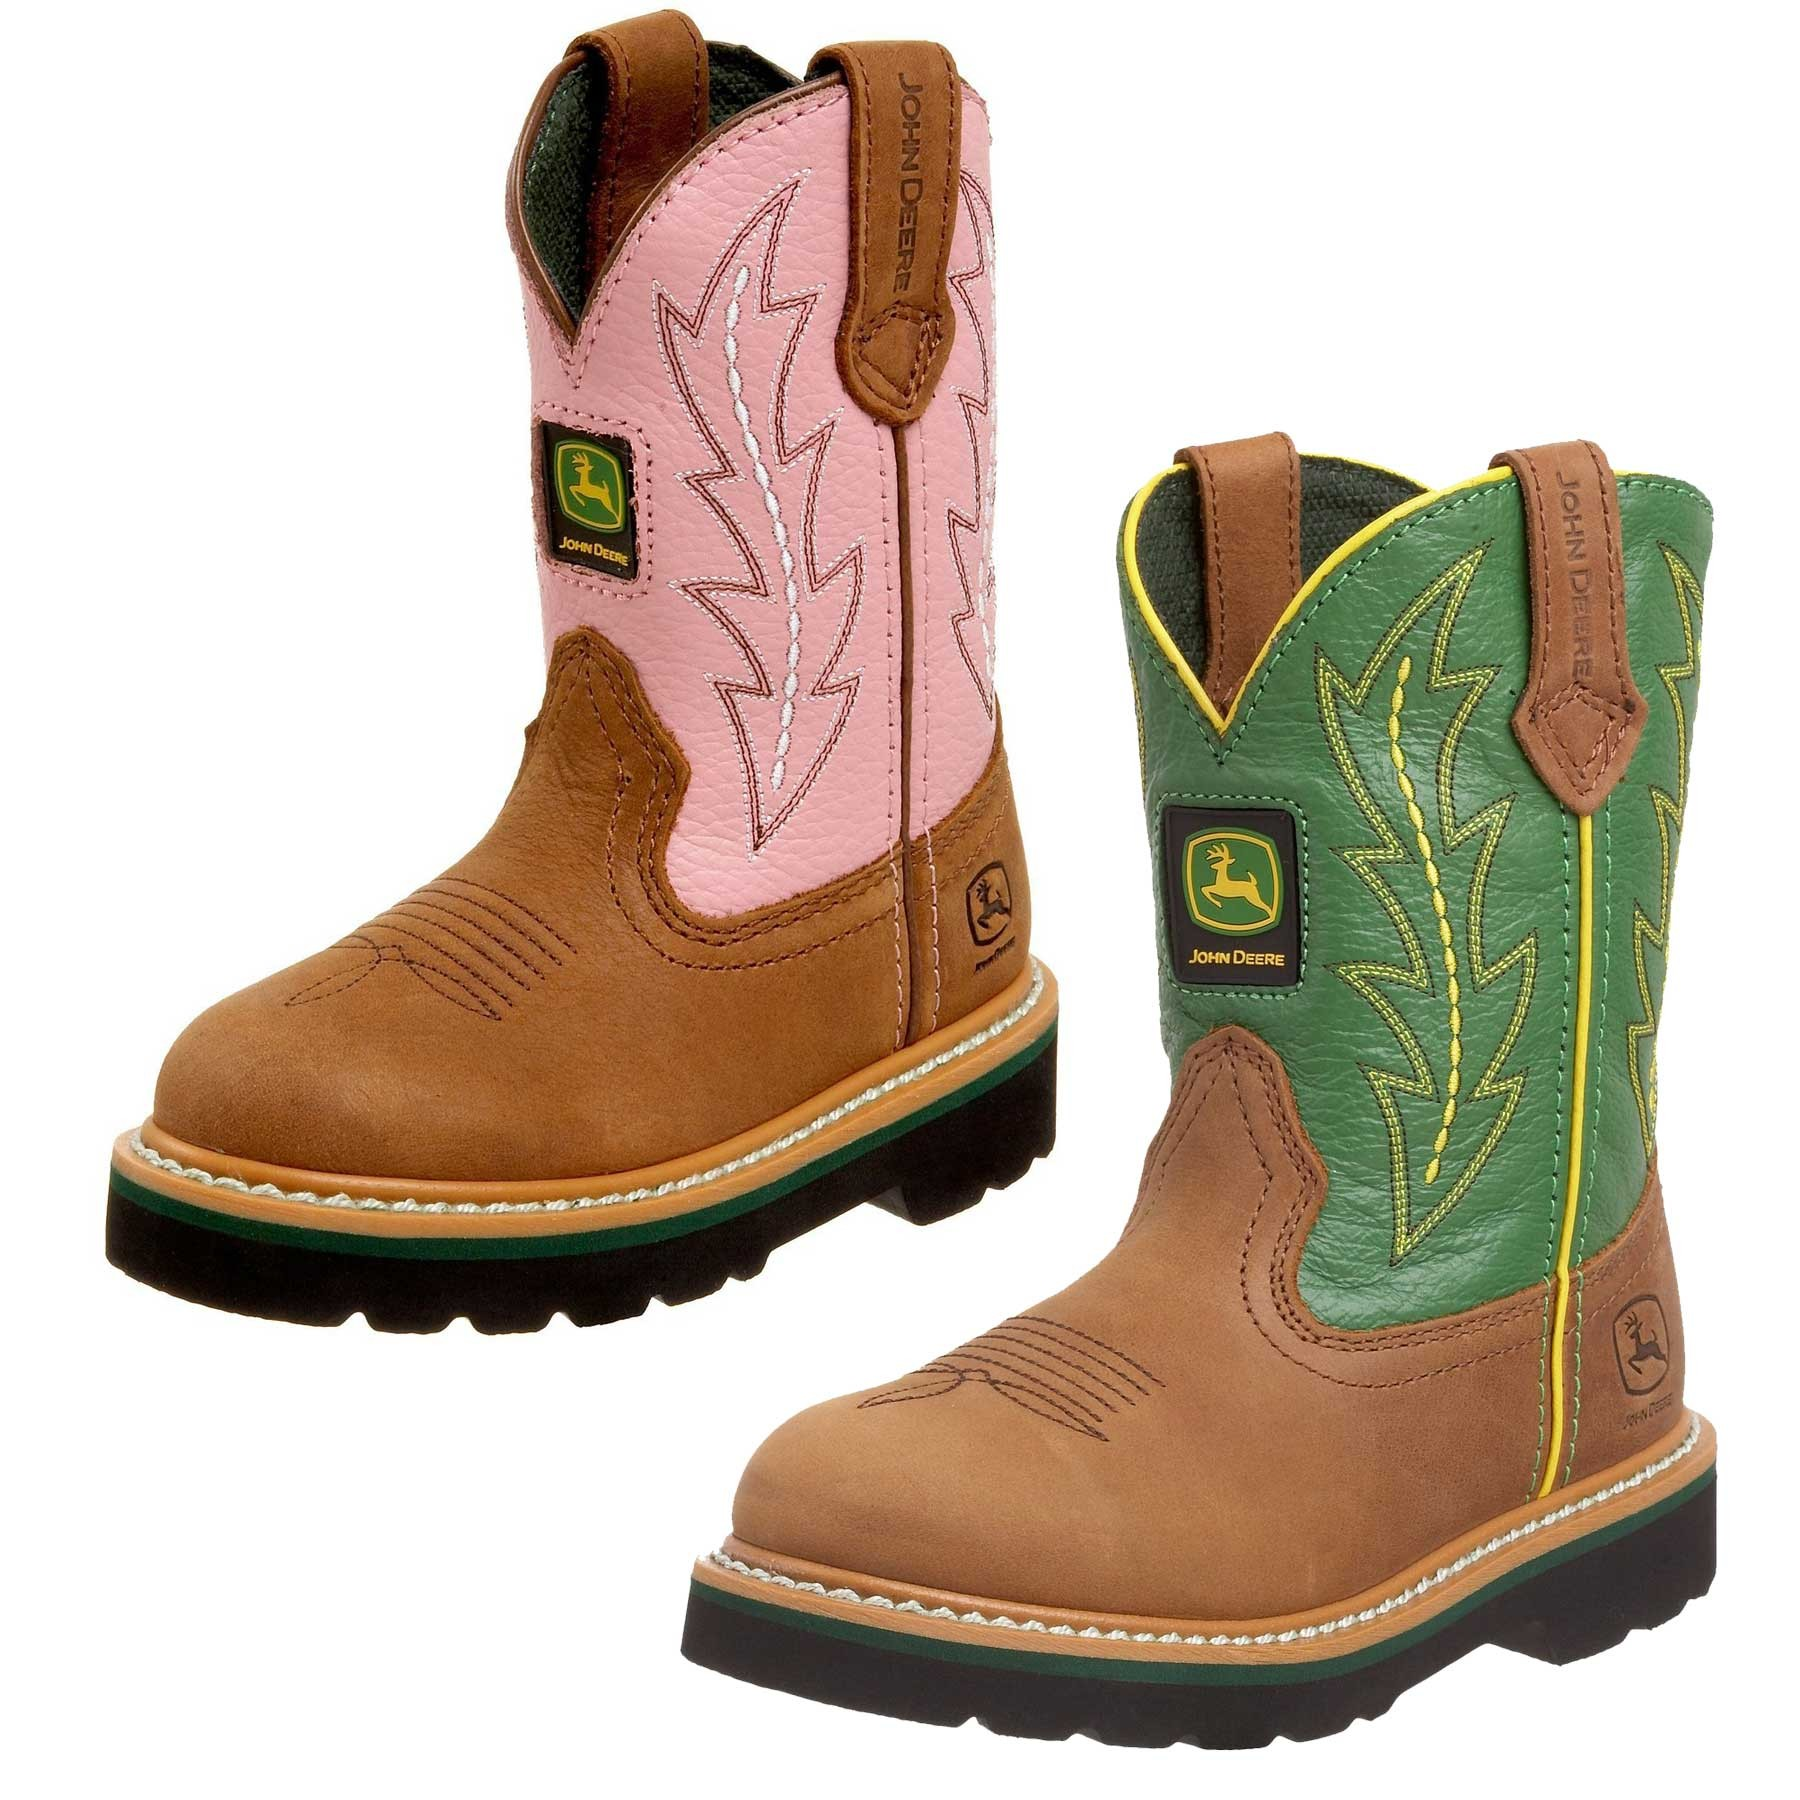 Kids will want to wear their John Deere boots everywhere.